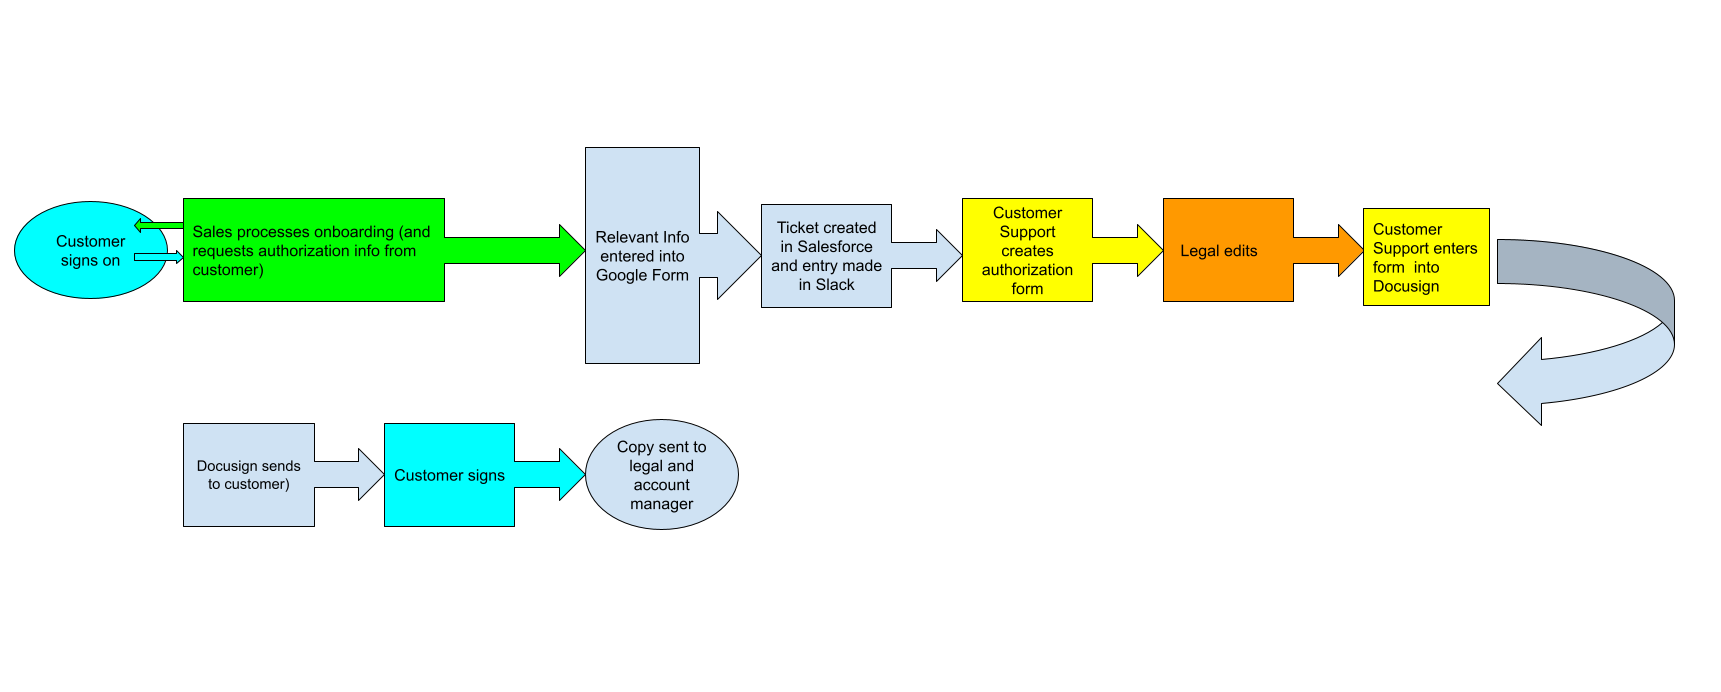 Image of Percipient Legal Process Automation Process Map